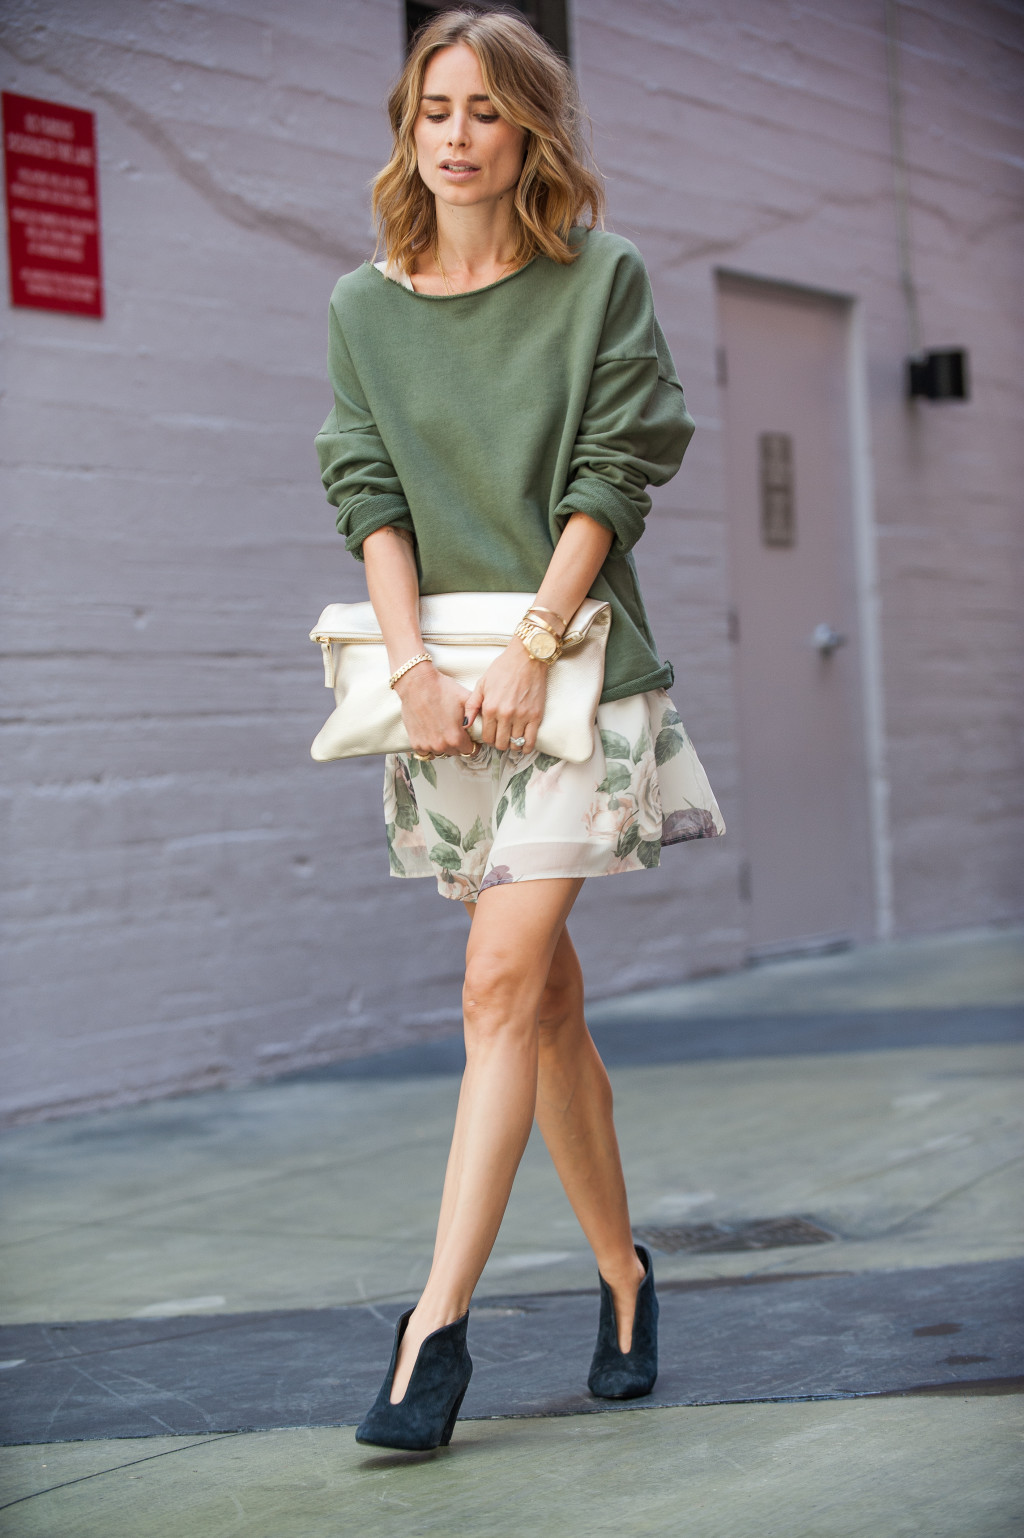 anine-bing-outfit3-1024x1538.jpg